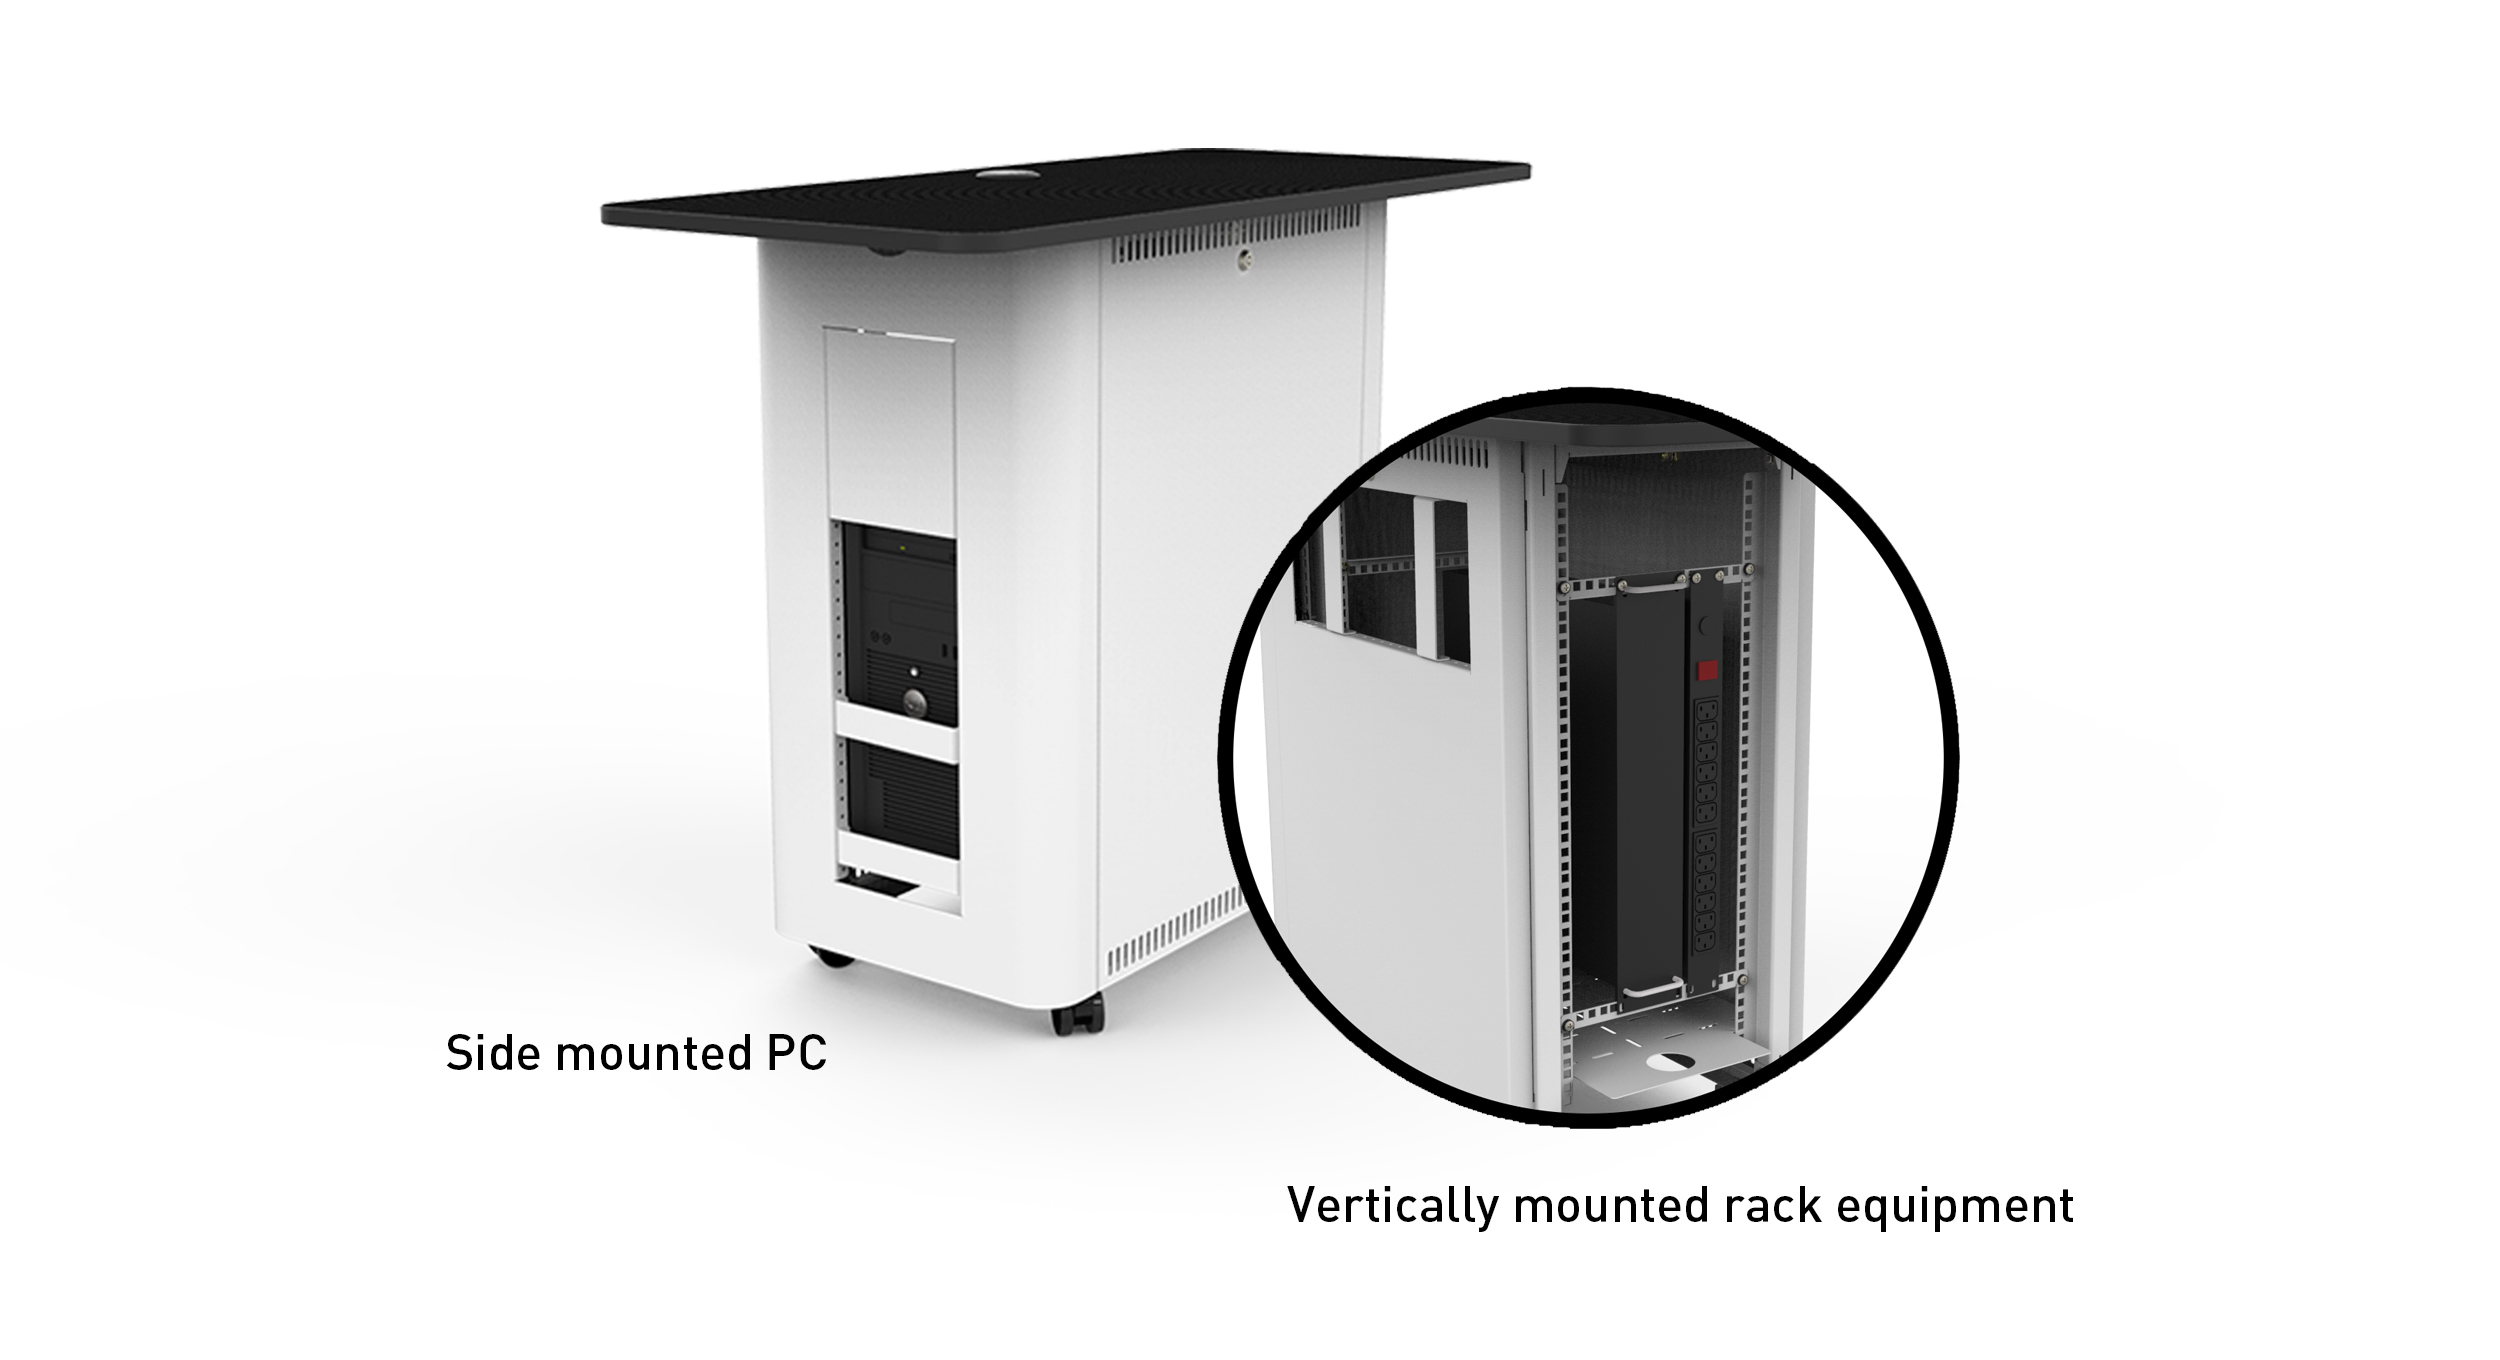 Vertically mounted rack equipment